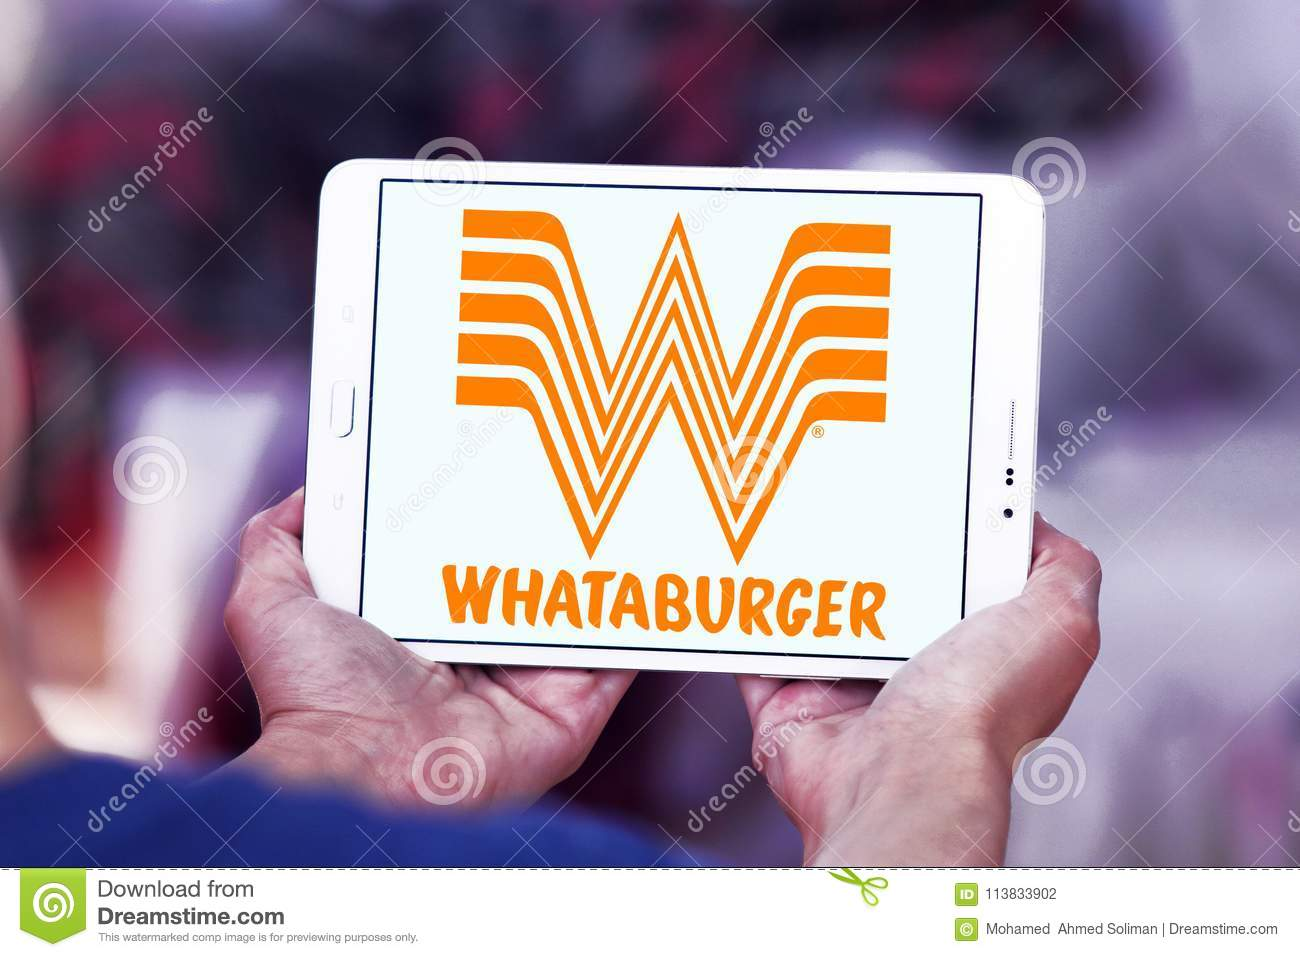 Whataburger Restaurant Chain Logo Editorial Photography Image Of